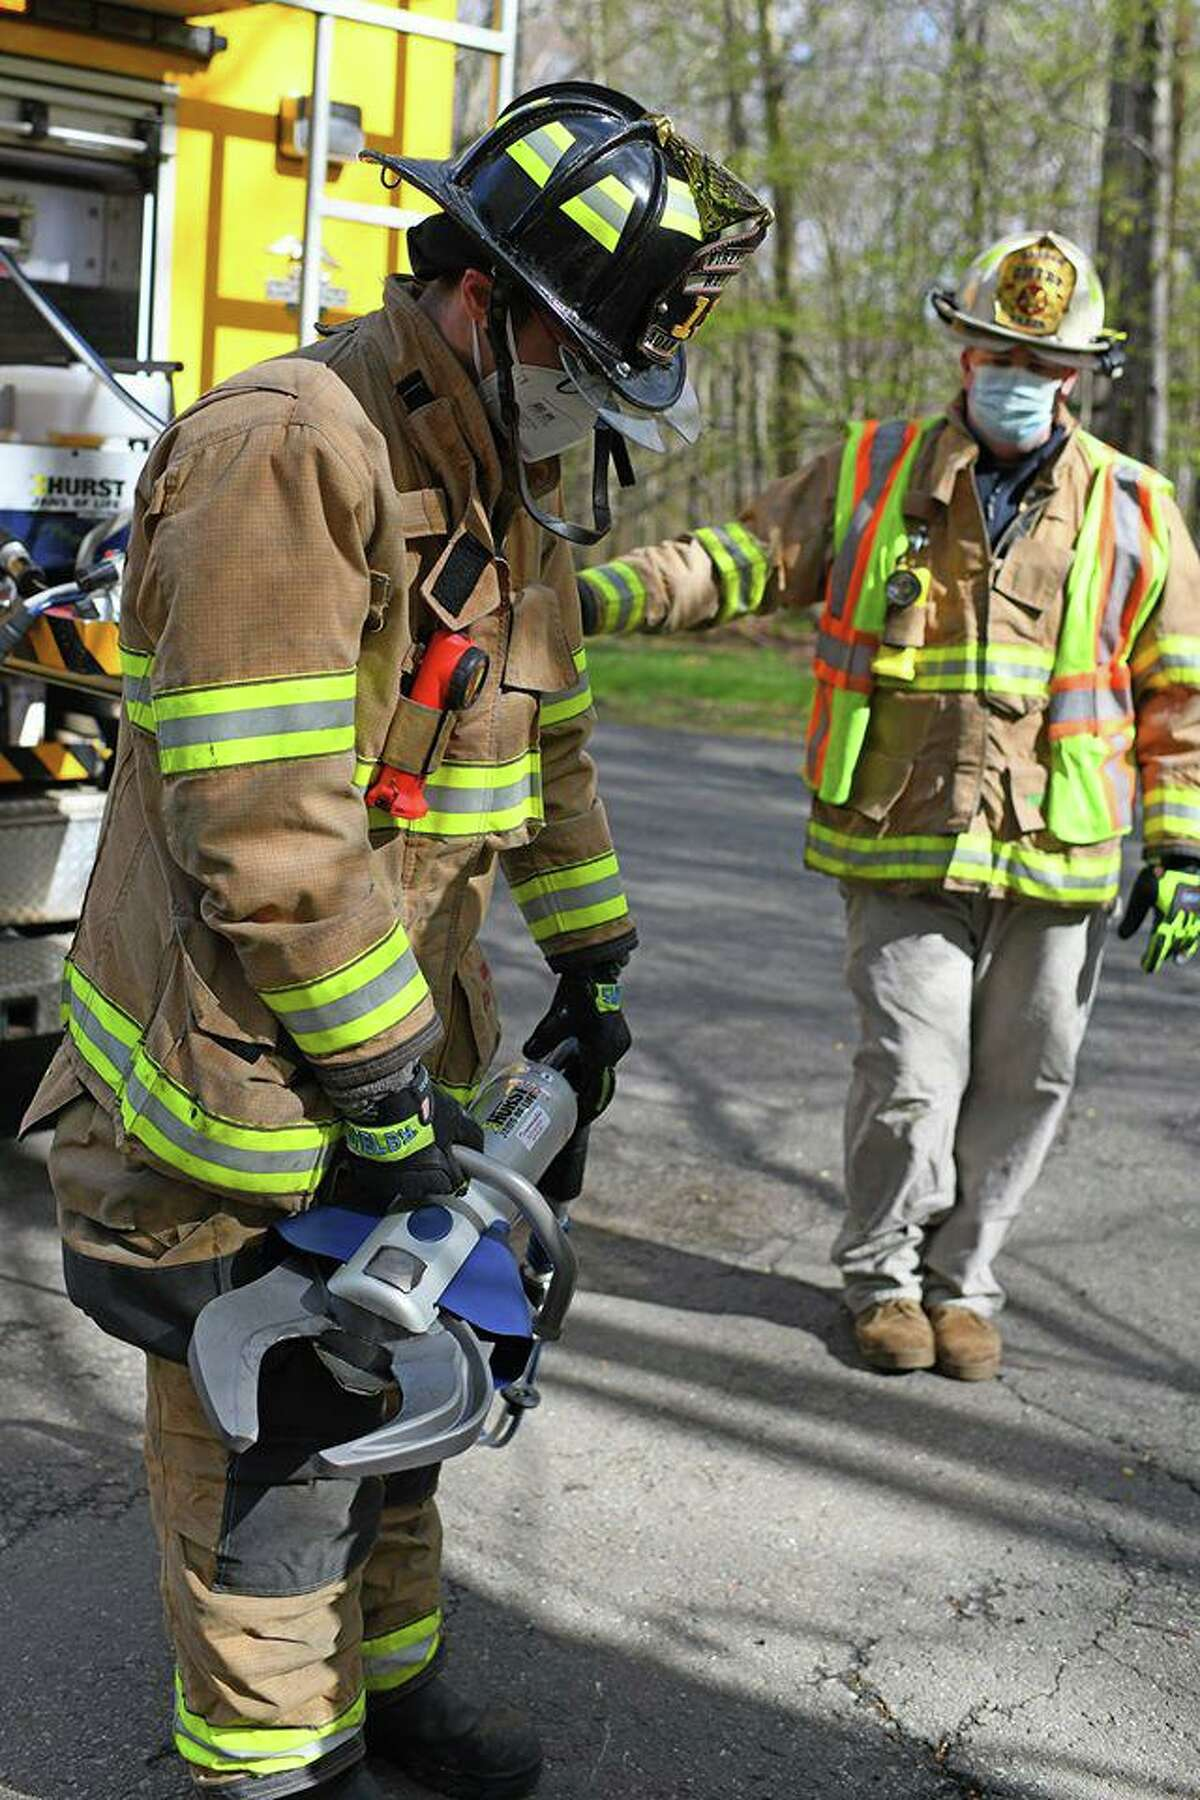 Here, Haddam Volunteer Fire Co. members are seen in action.